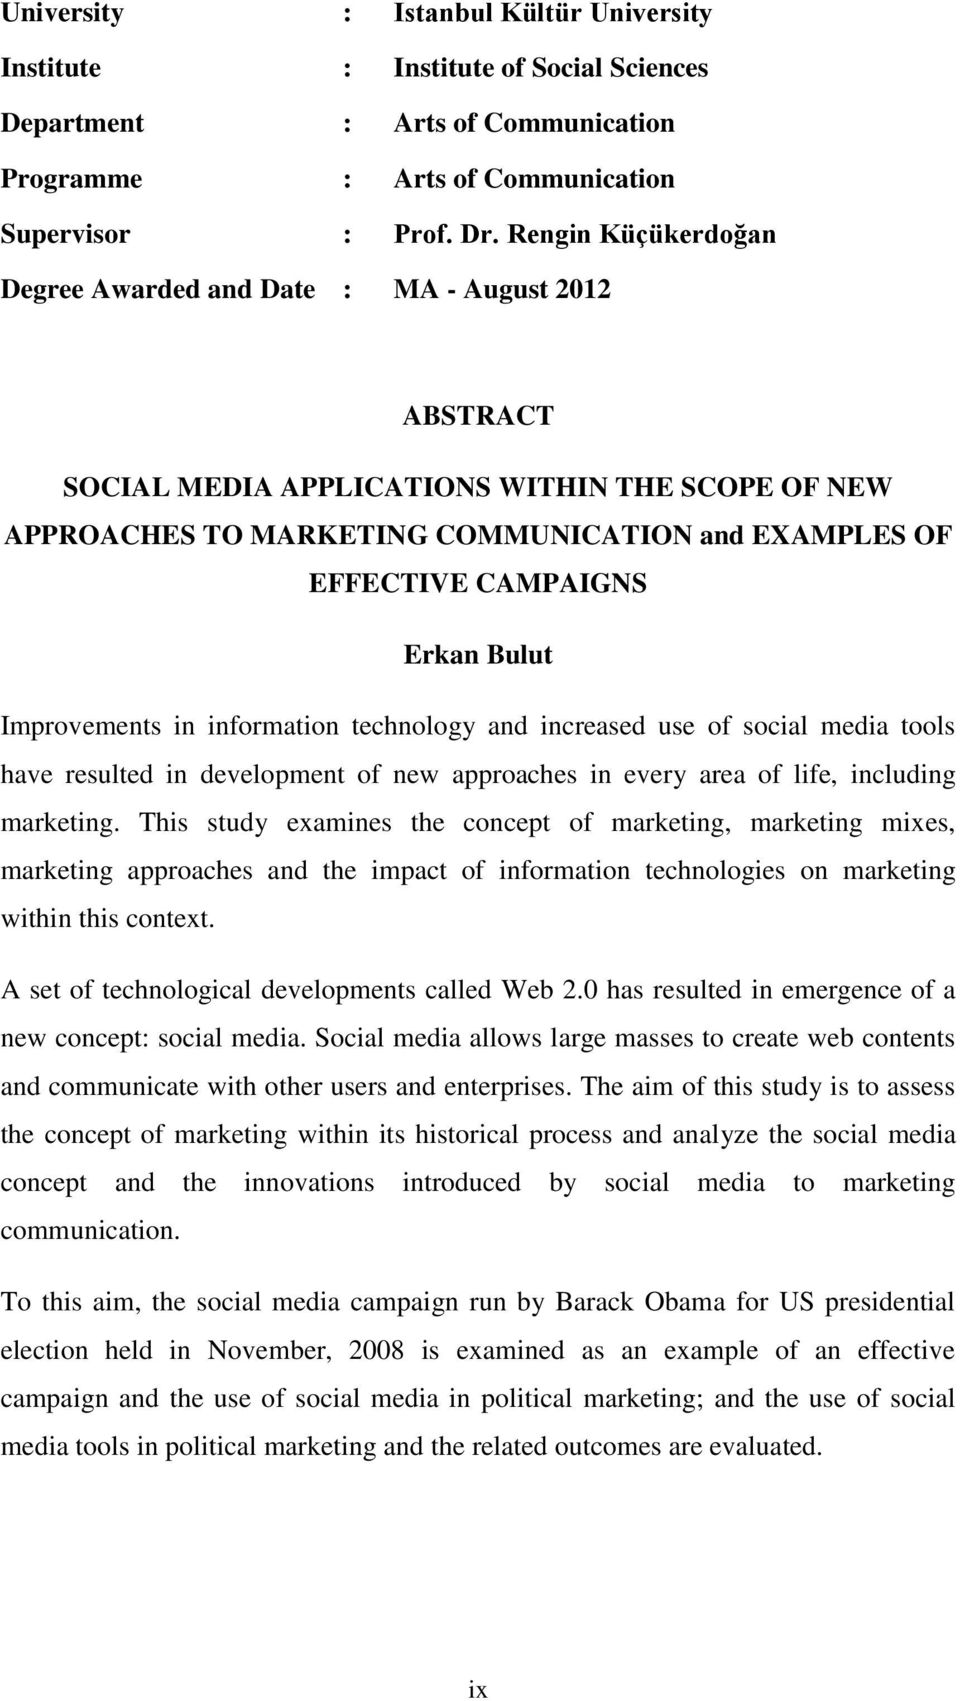 Erkan Bulut Improvements in information technology and increased use of social media tools have resulted in development of new approaches in every area of life, including marketing.